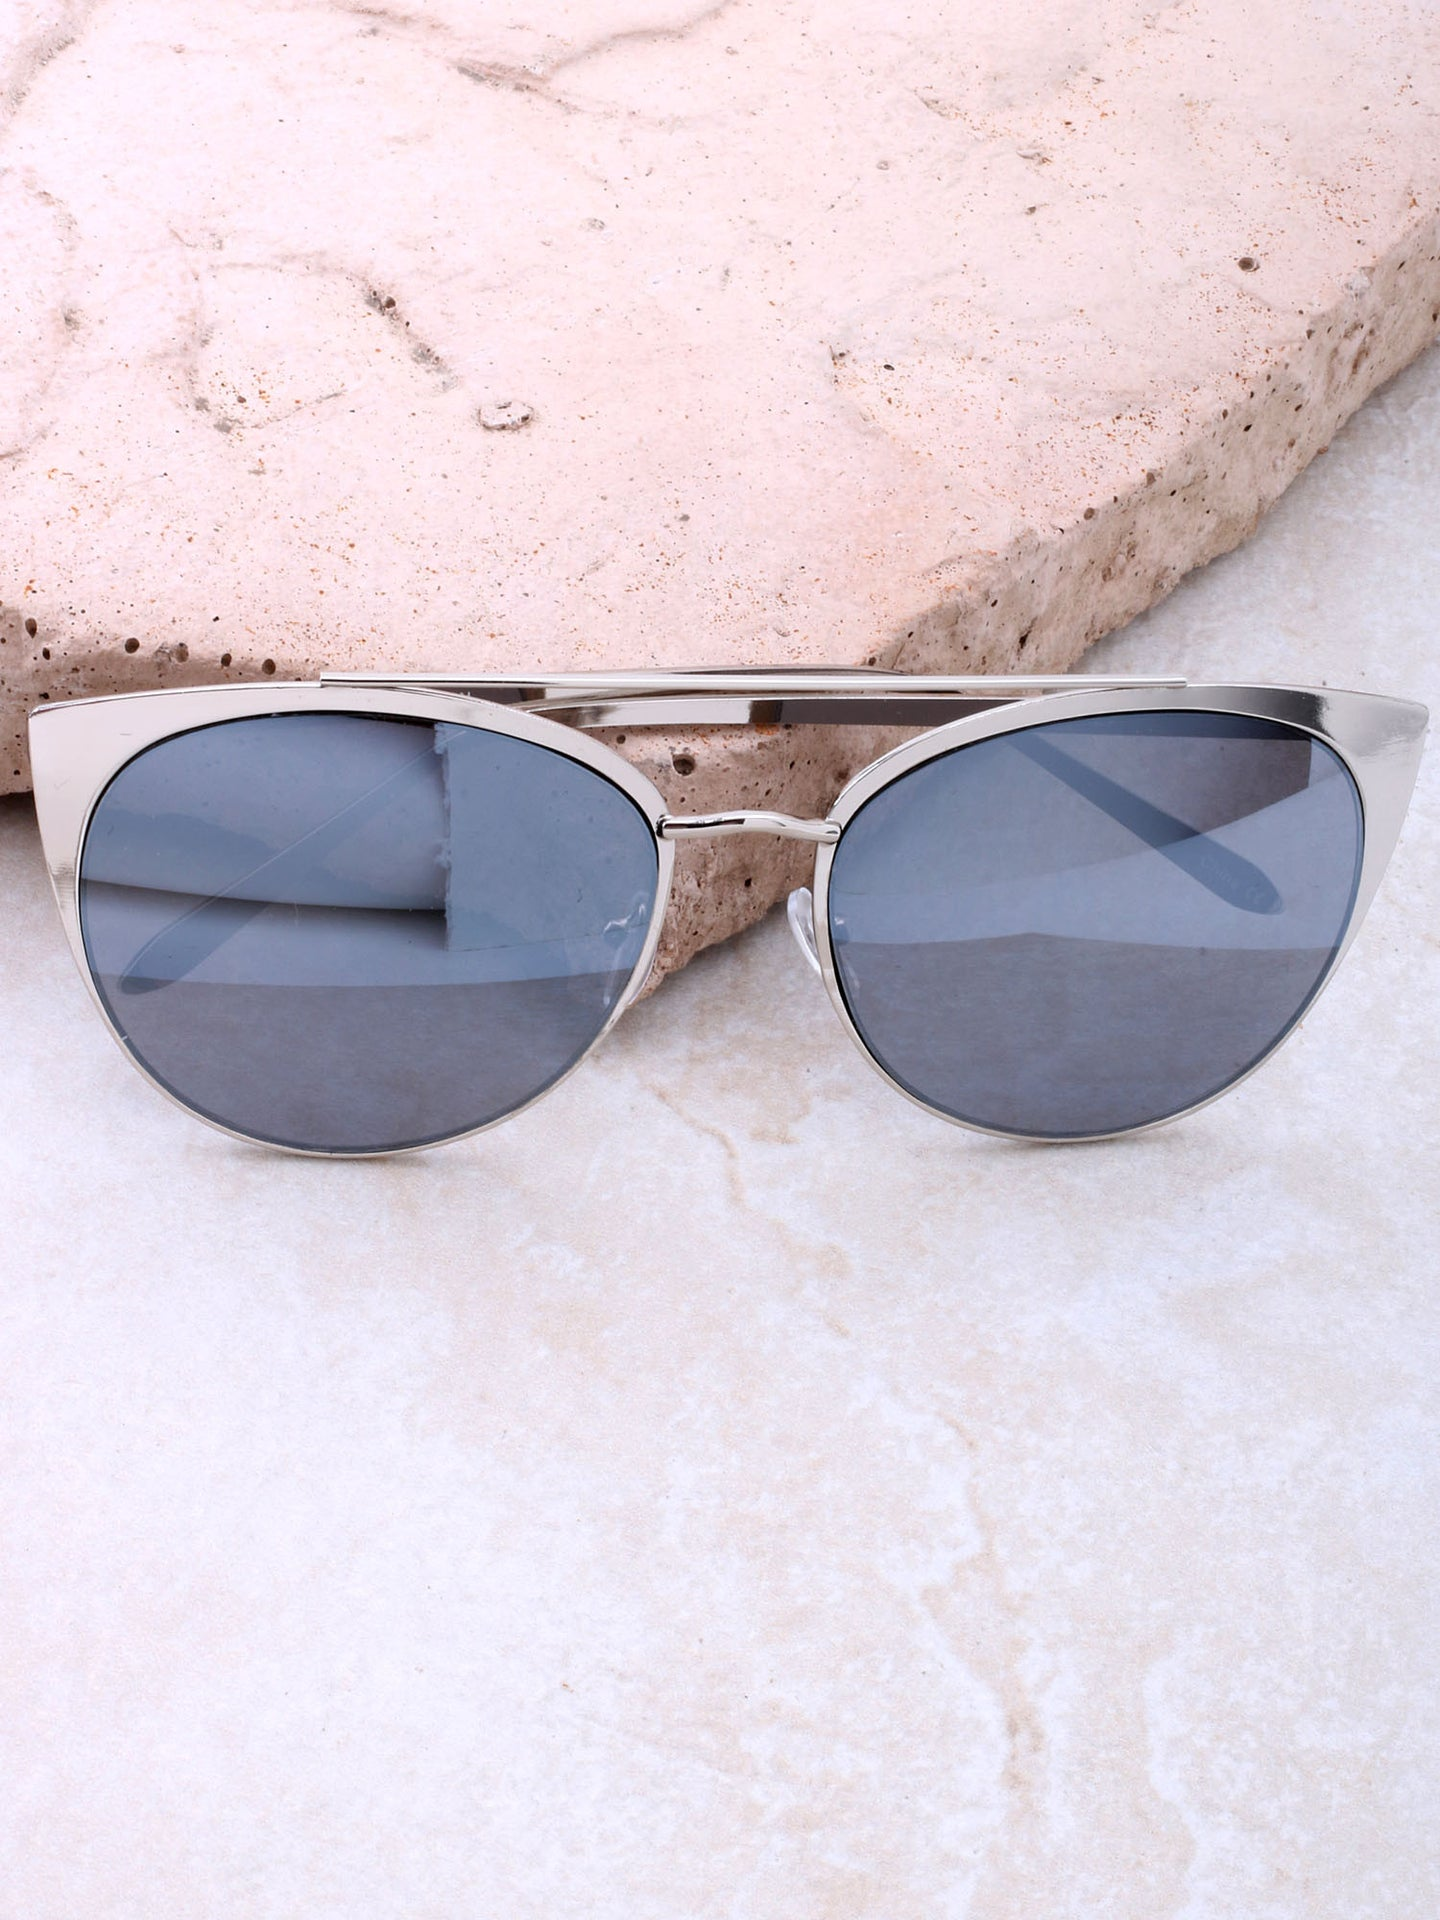 Eclipse Cat Eye Sunglasses Anarchy Street Silver_Gray